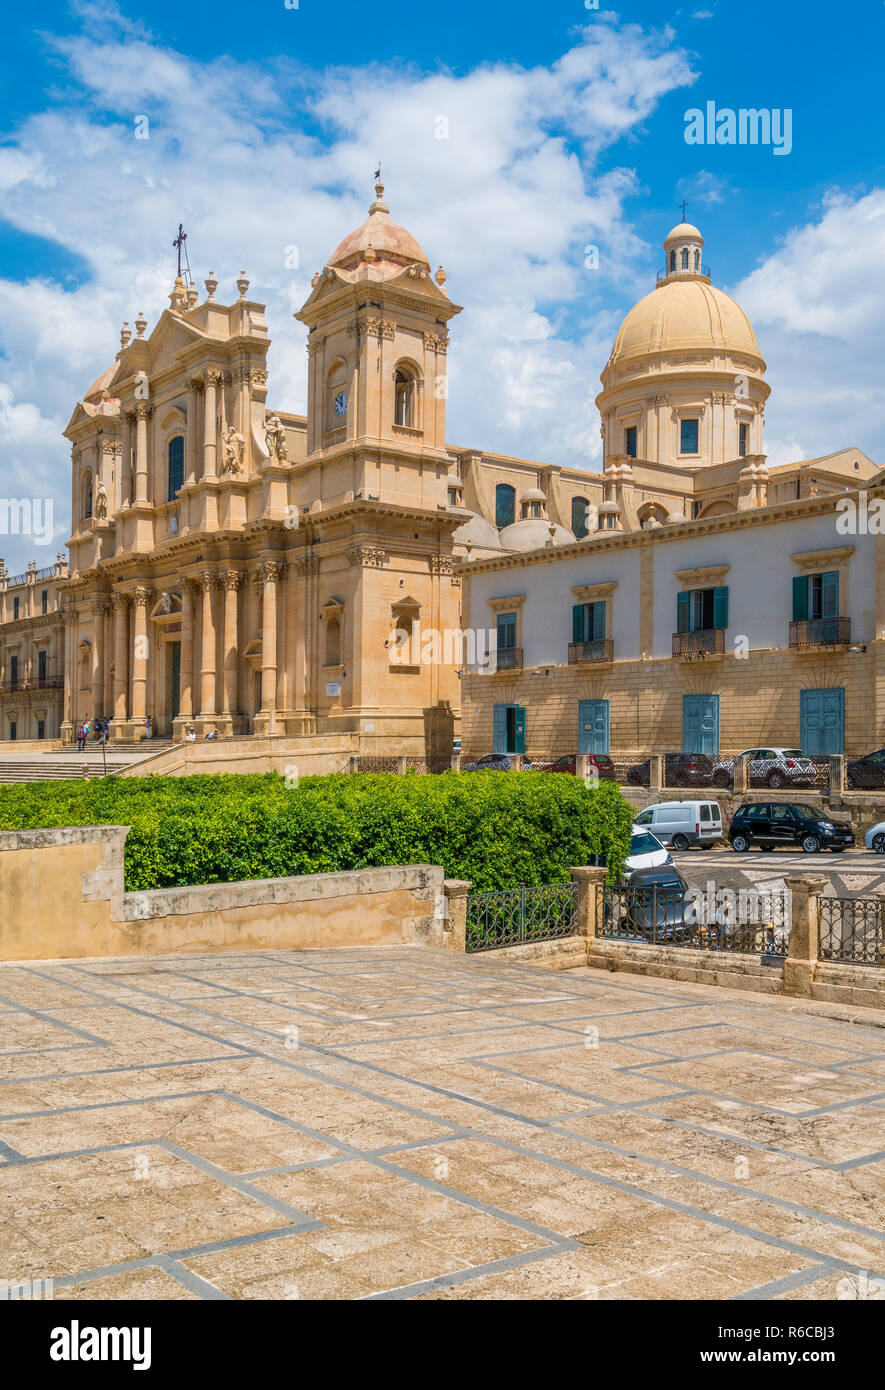 The famous Cathedral of Noto (Basilica Minore of San Nicolò) on a sunny summer day. Province of Siracusa, Sicily, Italy. Stock Photo